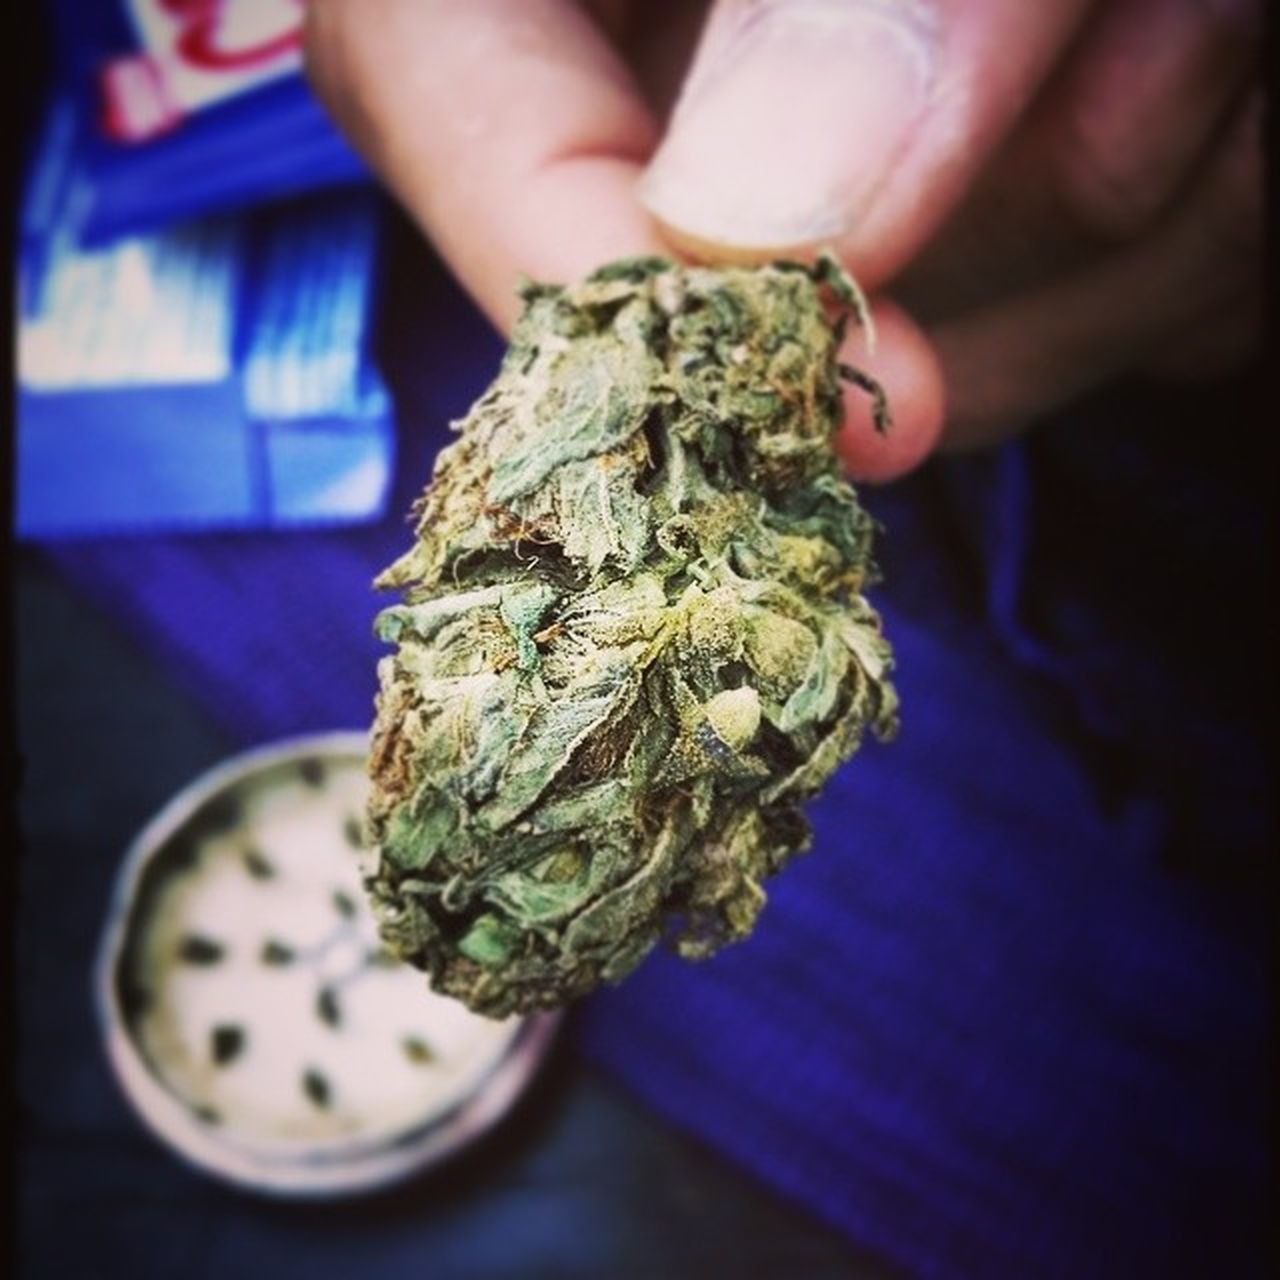 human hand, real people, holding, marijuana - herbal cannabis, one person, human body part, close-up, indoors, blue, men, day, people